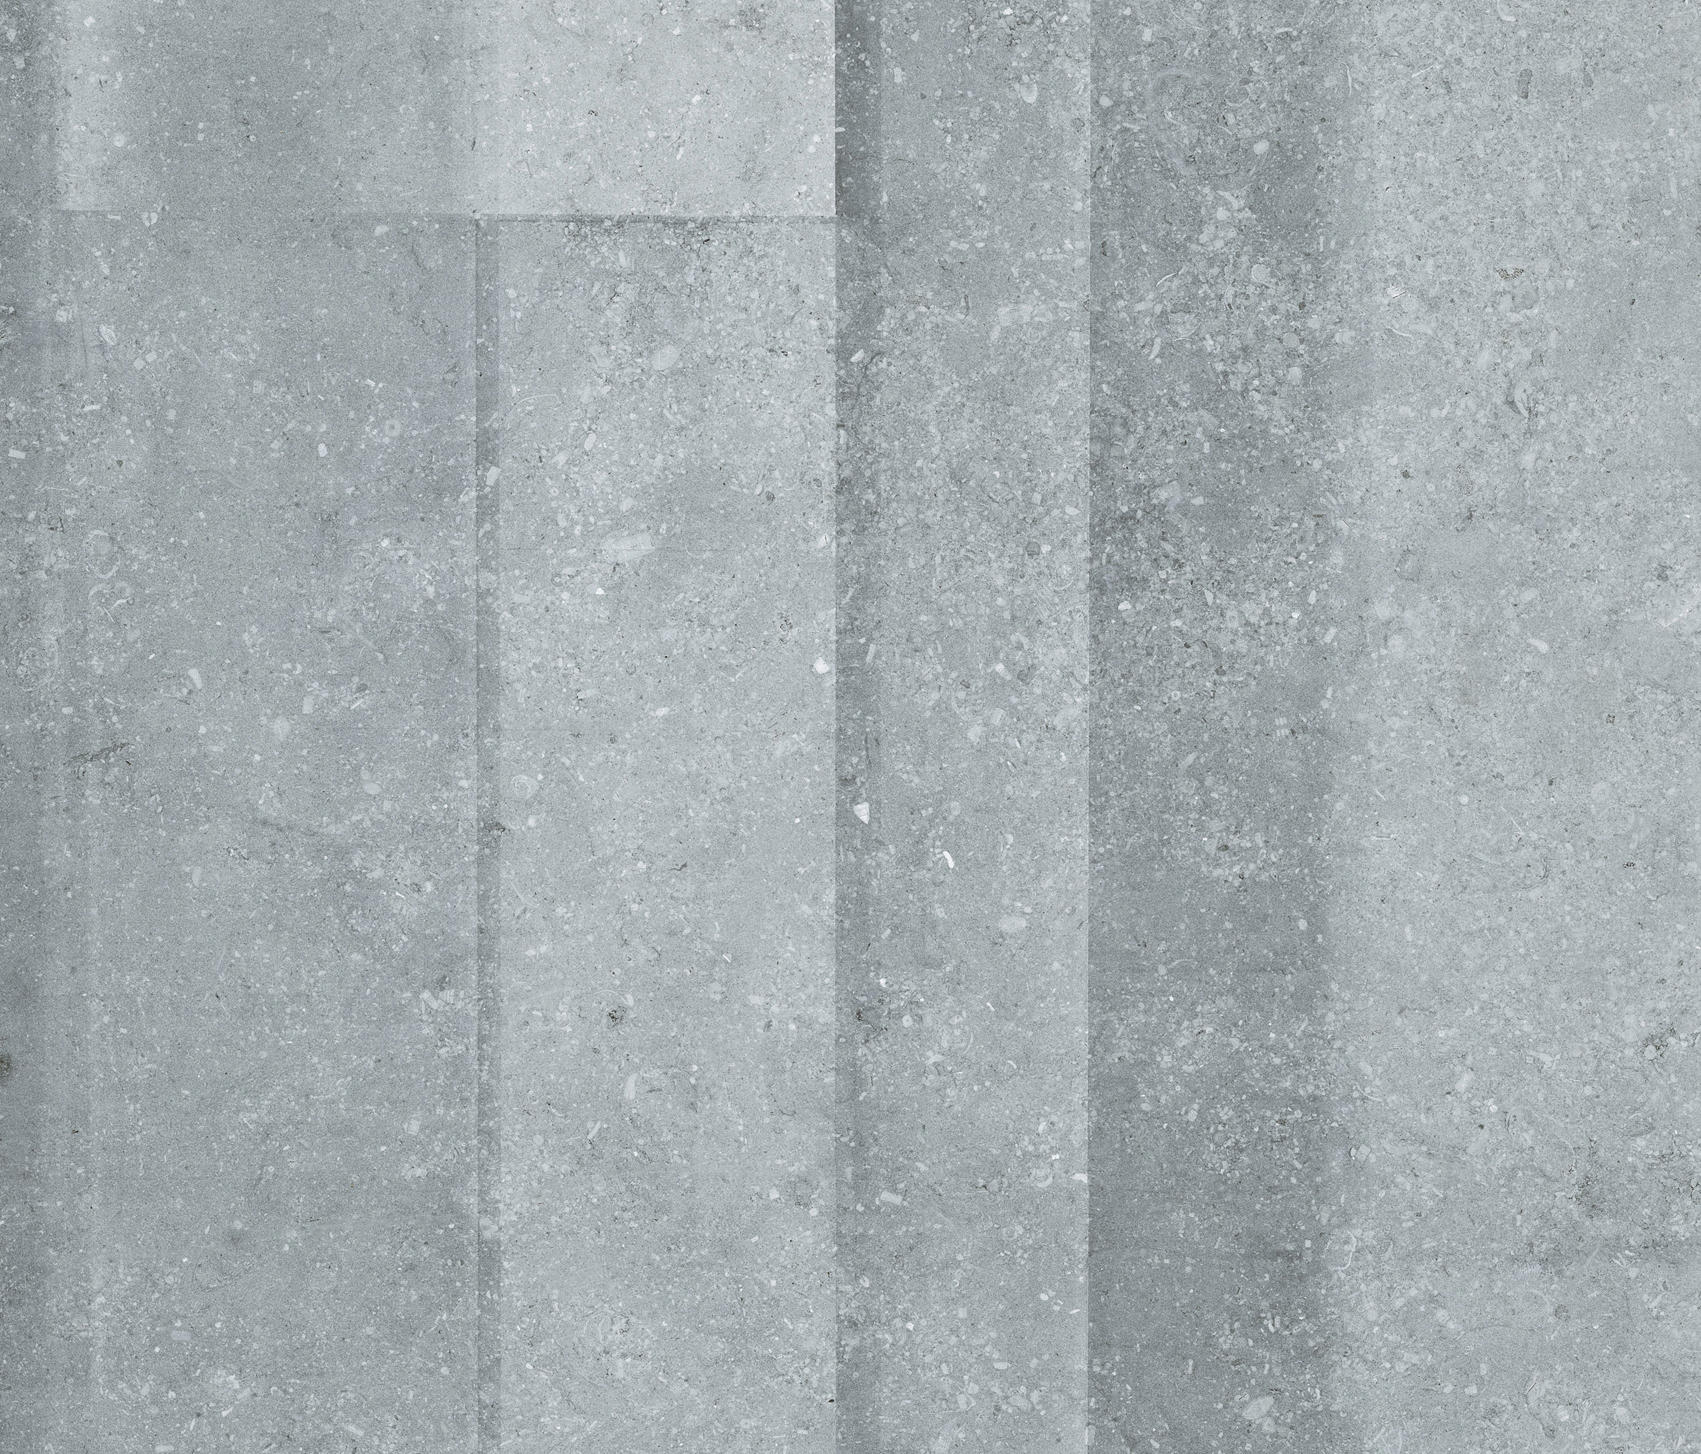 Bluestone Floor Tiles From Vives Cer Mica Architonic